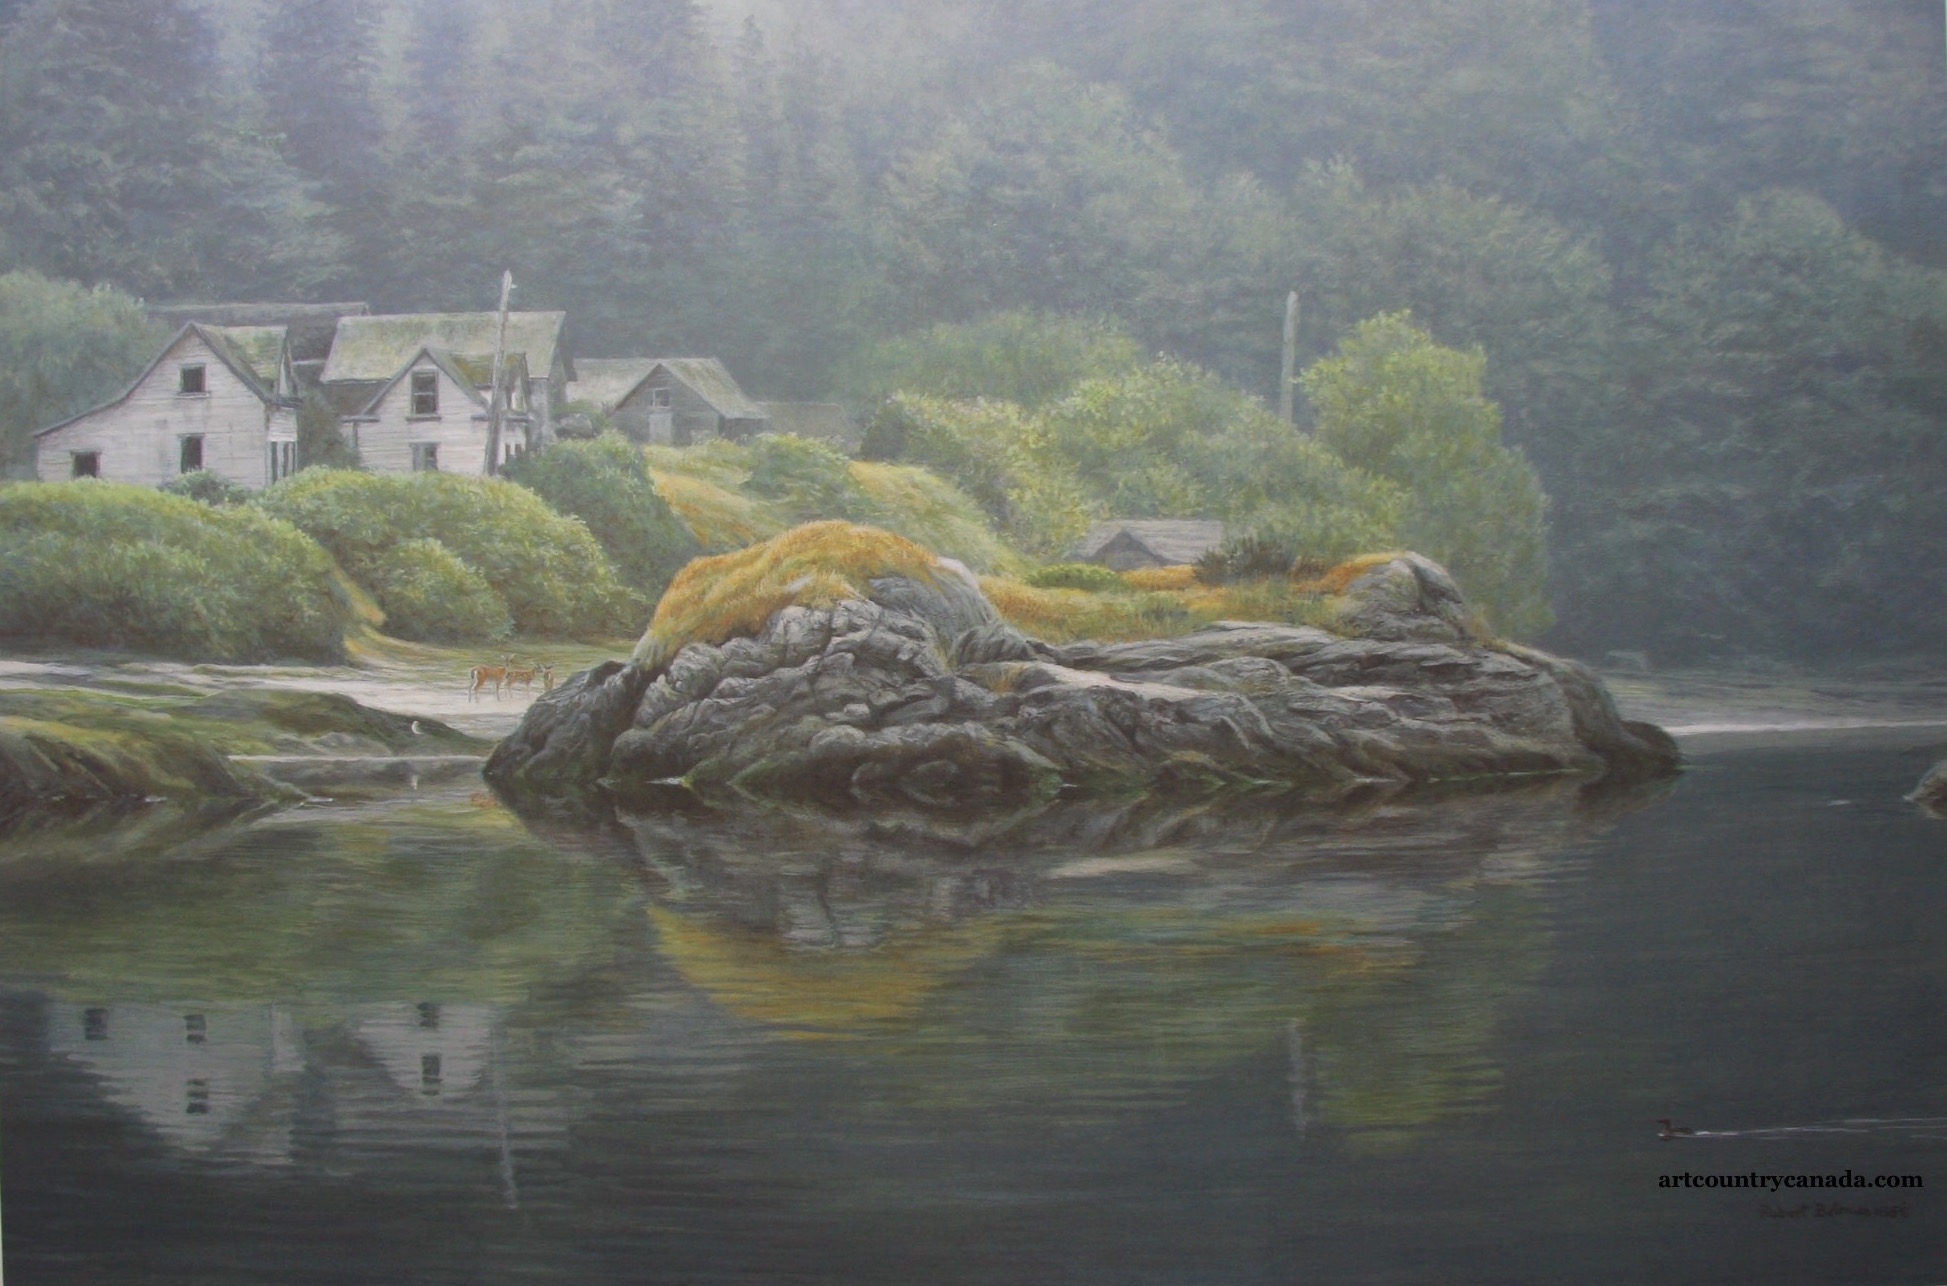 Robert bateman Potlatch Village